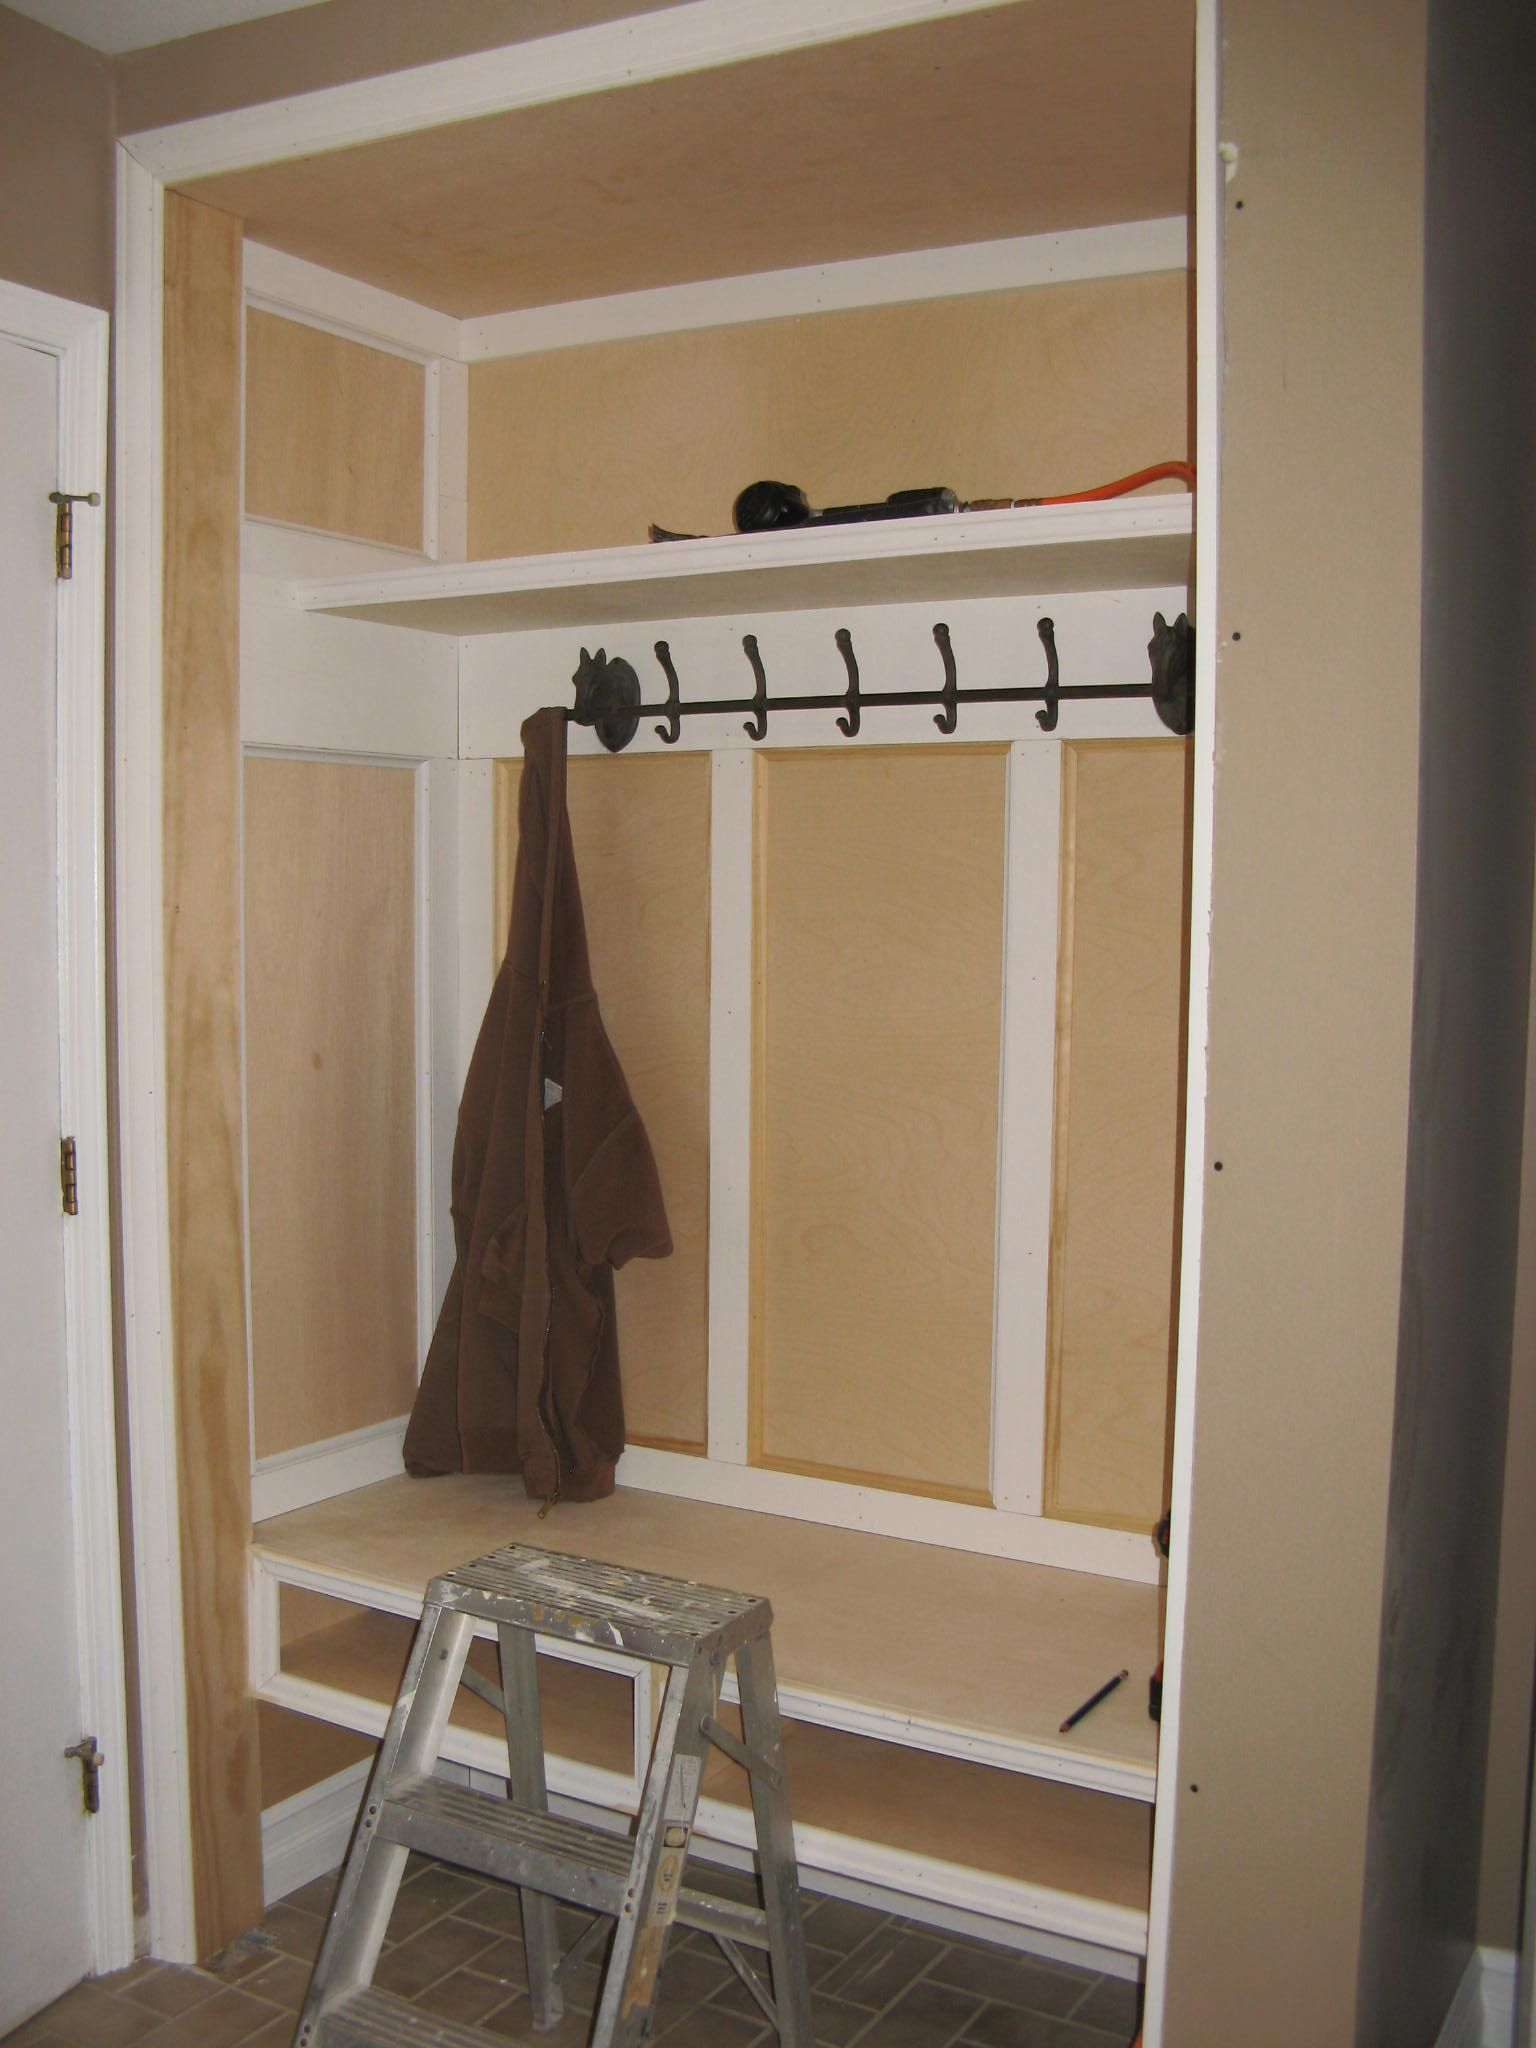 Converting Our Laundry Room Closet Into A Mudroom Area